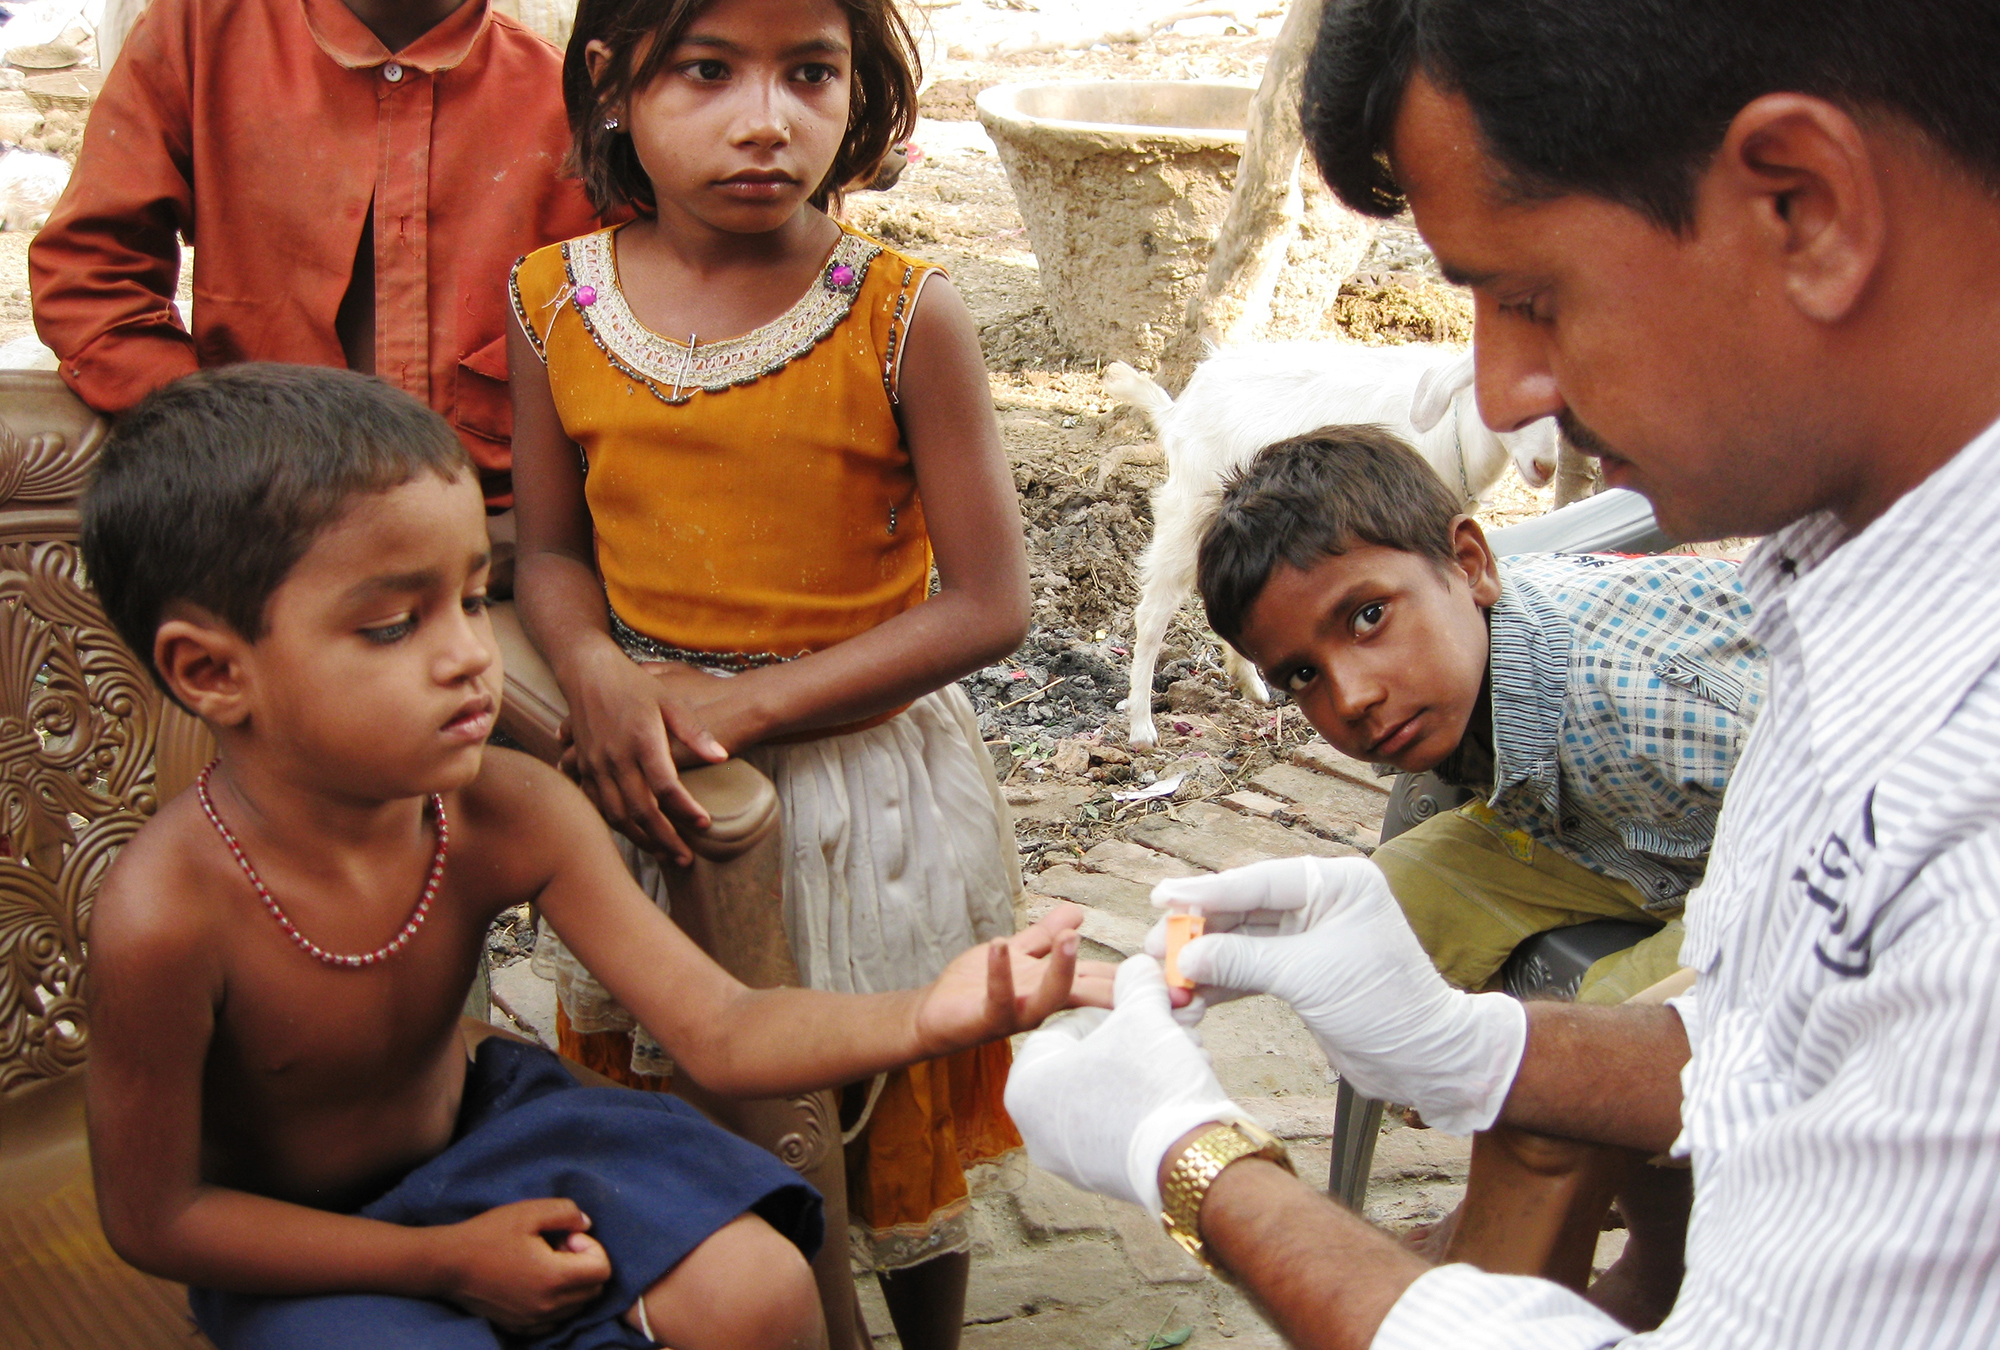 Child having his finger pricked in Bihar, India